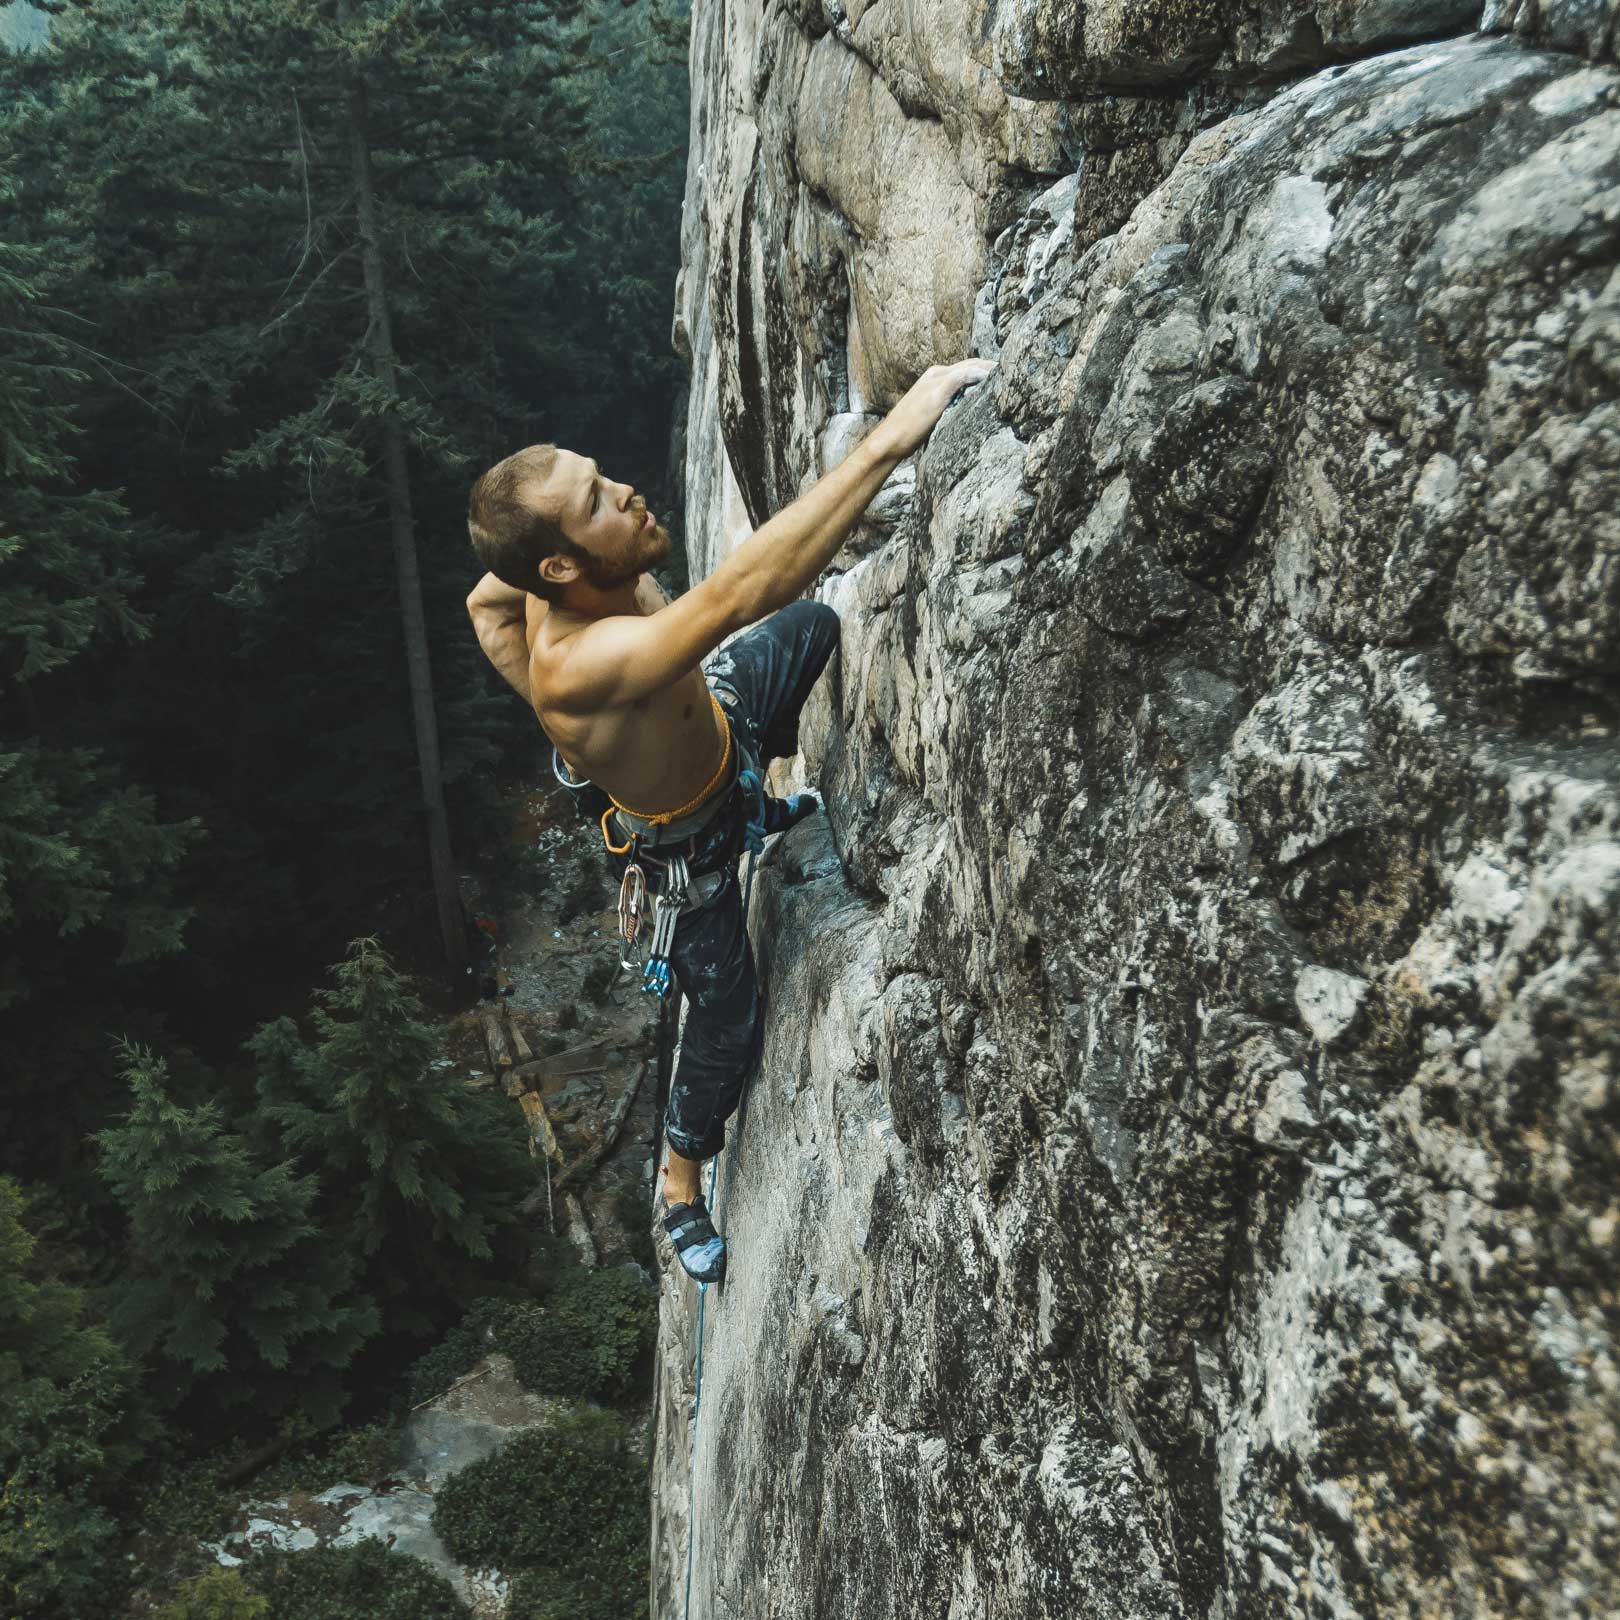 Man rock climbing while wearing the Nelson Pant